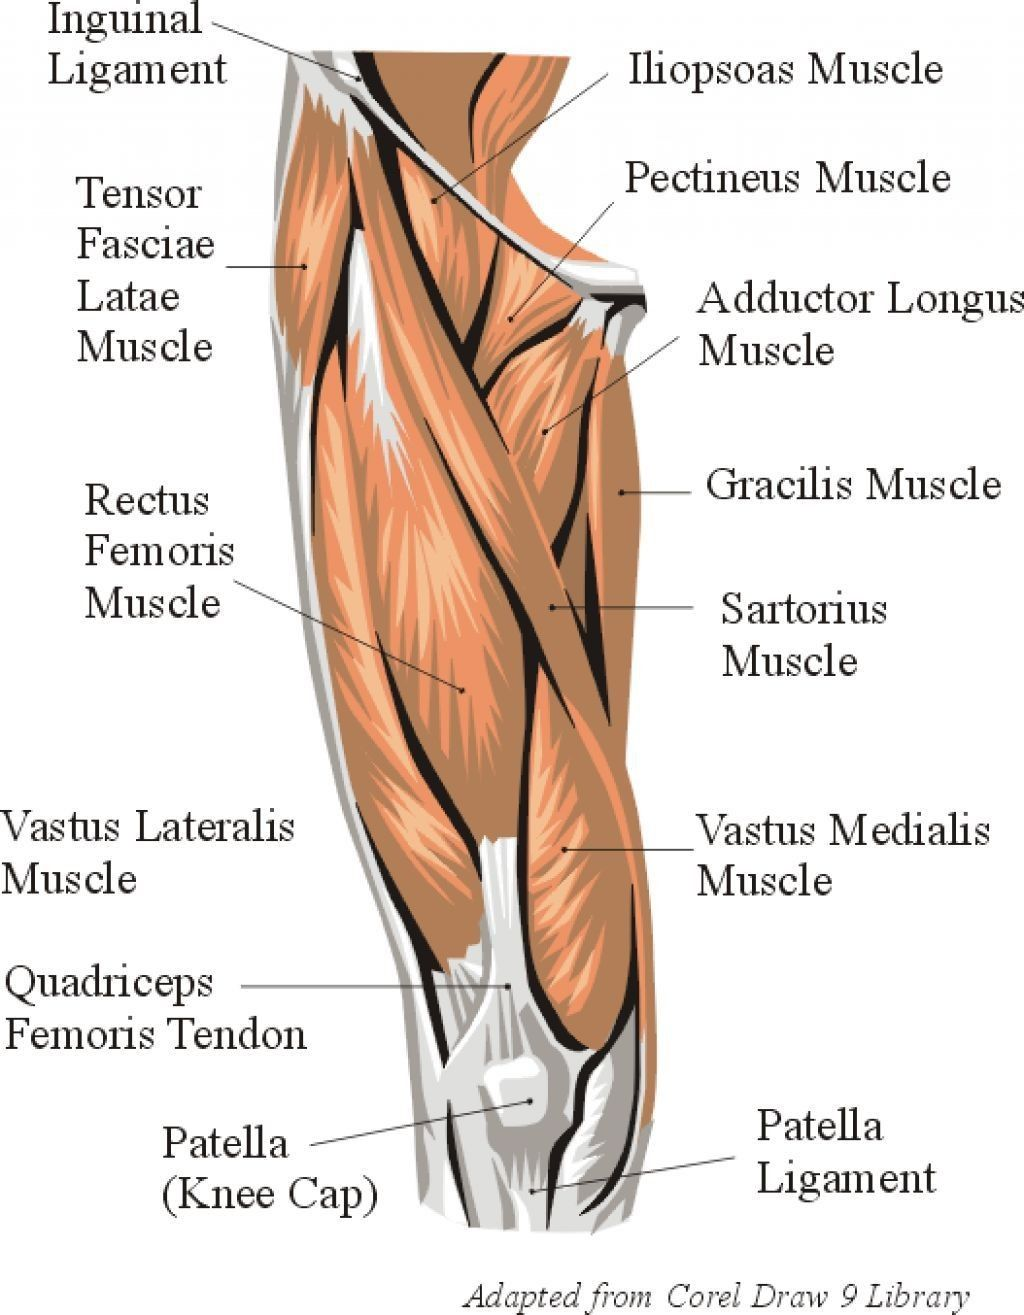 40+ Anterior hip muscle anatomy ideas in 2021